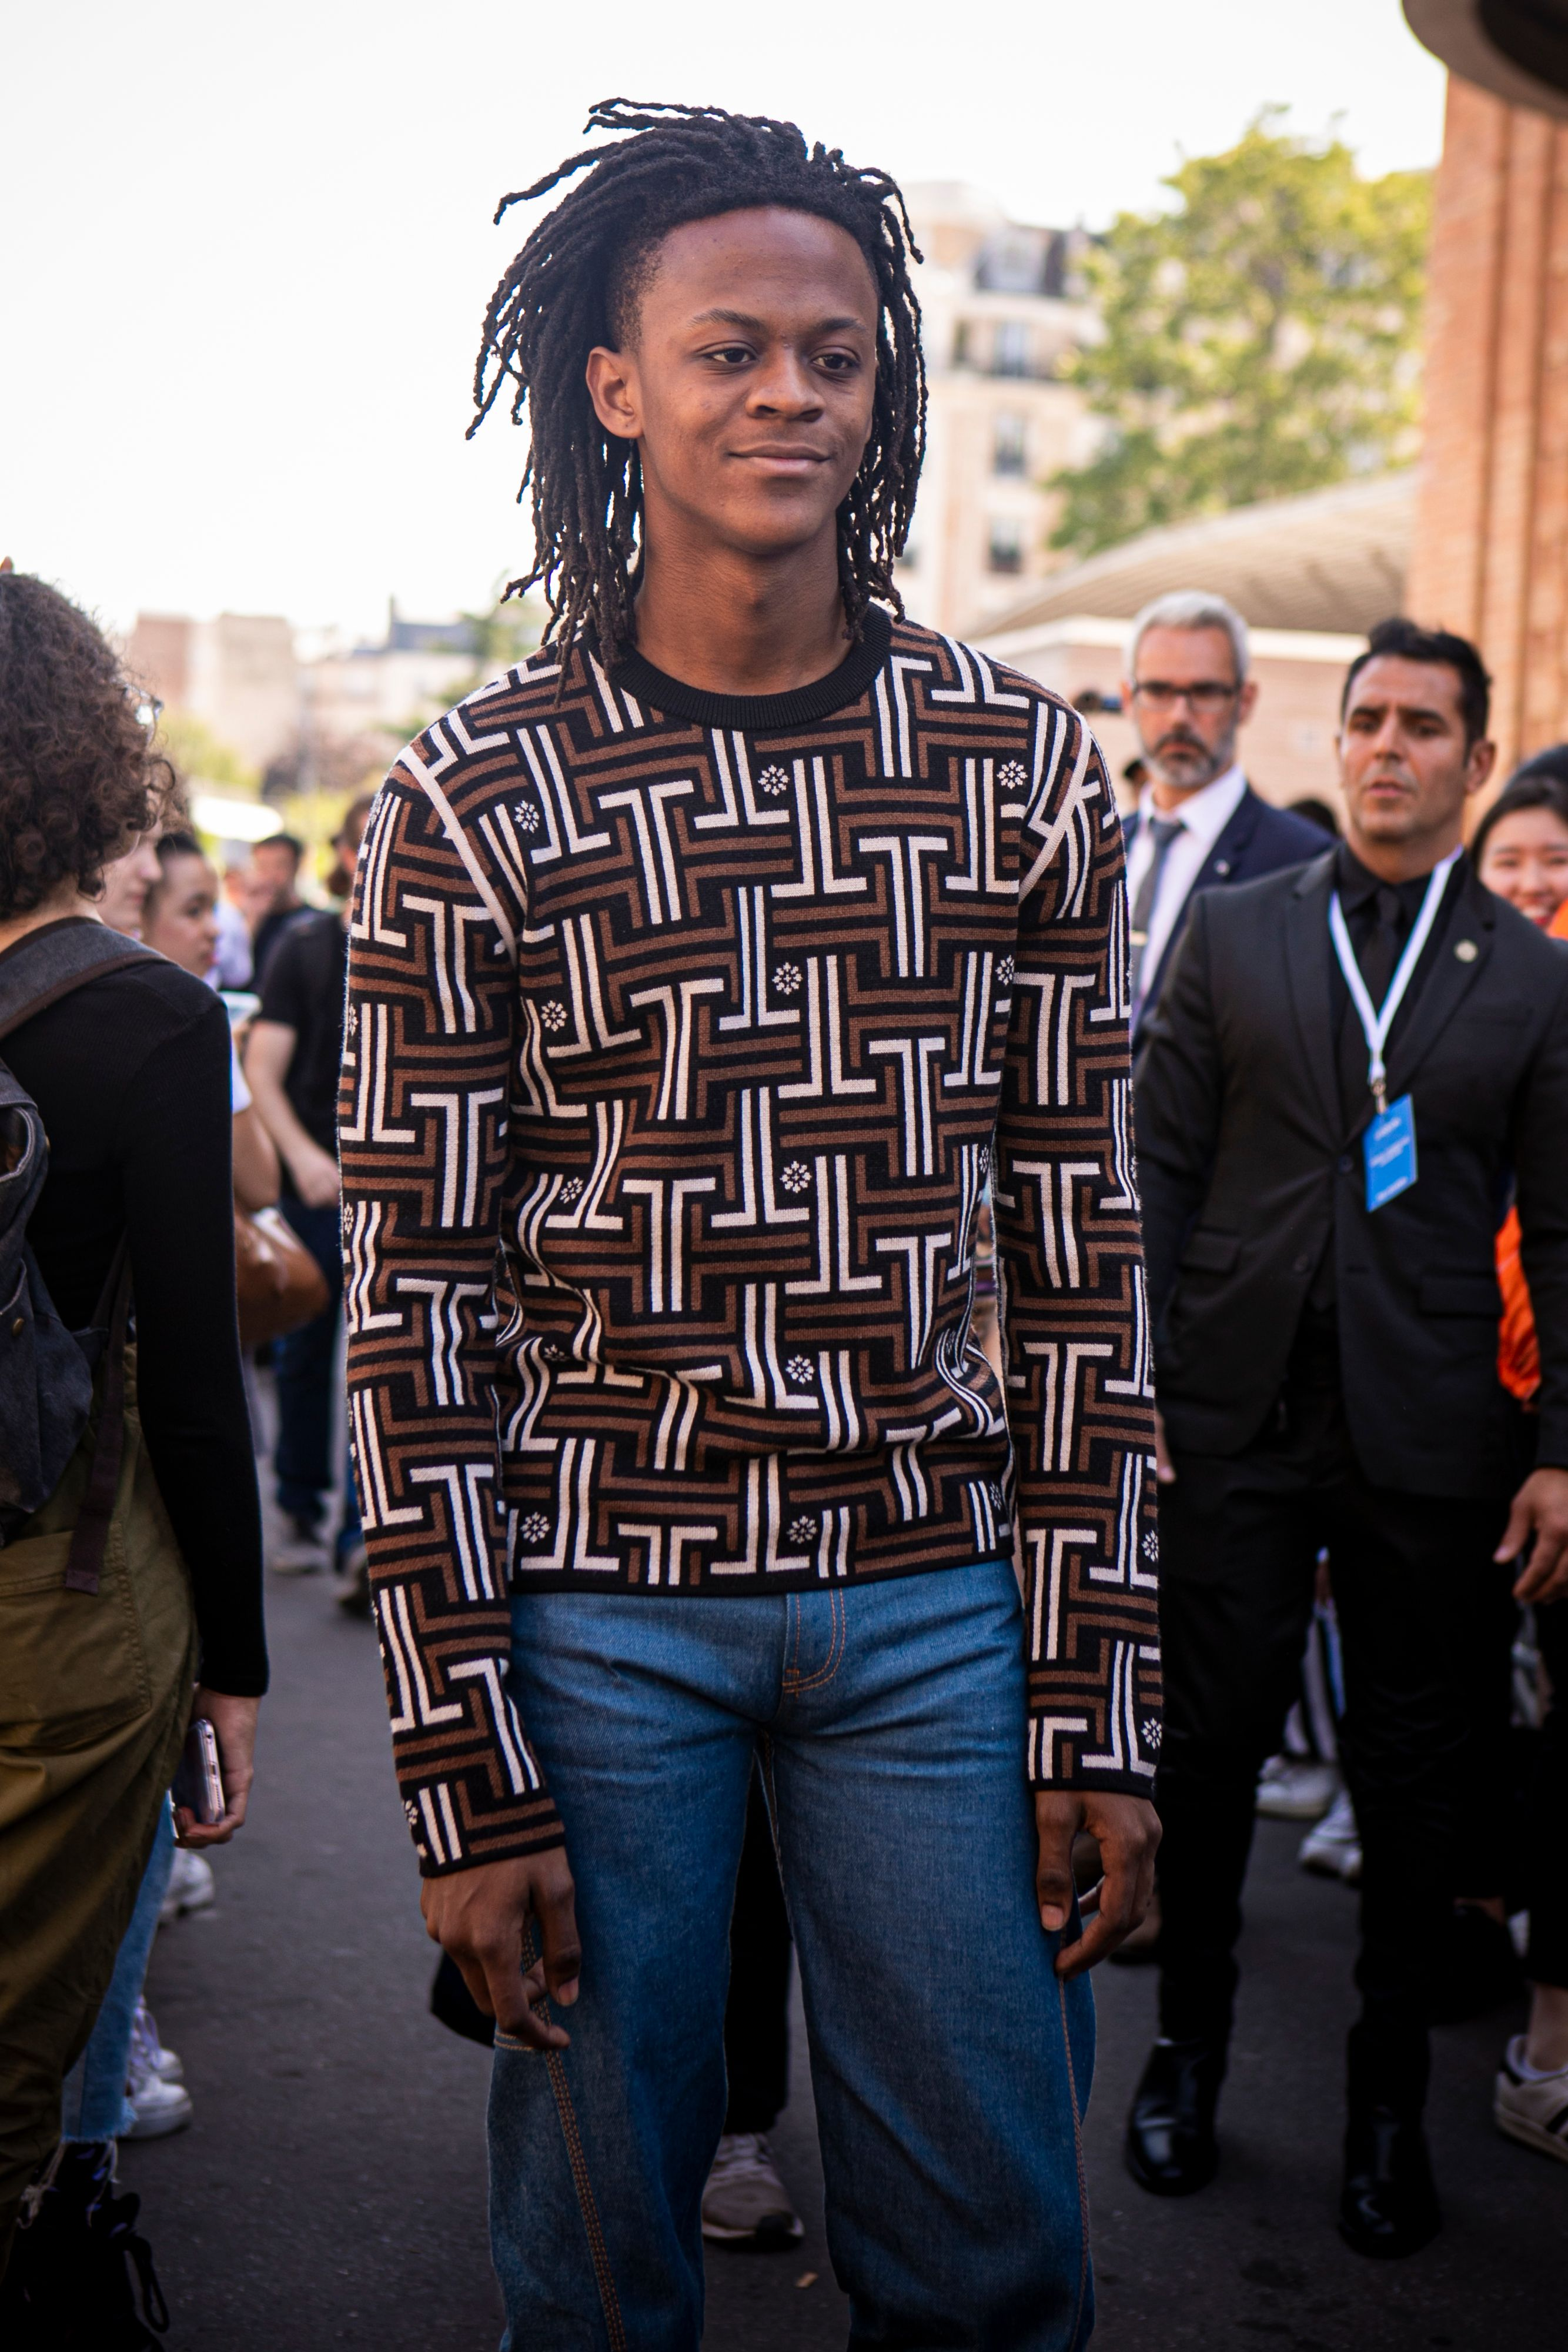 Myles B. O'Neal at the Lanvin fashion show during Paris Fashion Week Spring/Summer 2020 in June 2019 in Paris, France   Source: Getty Images